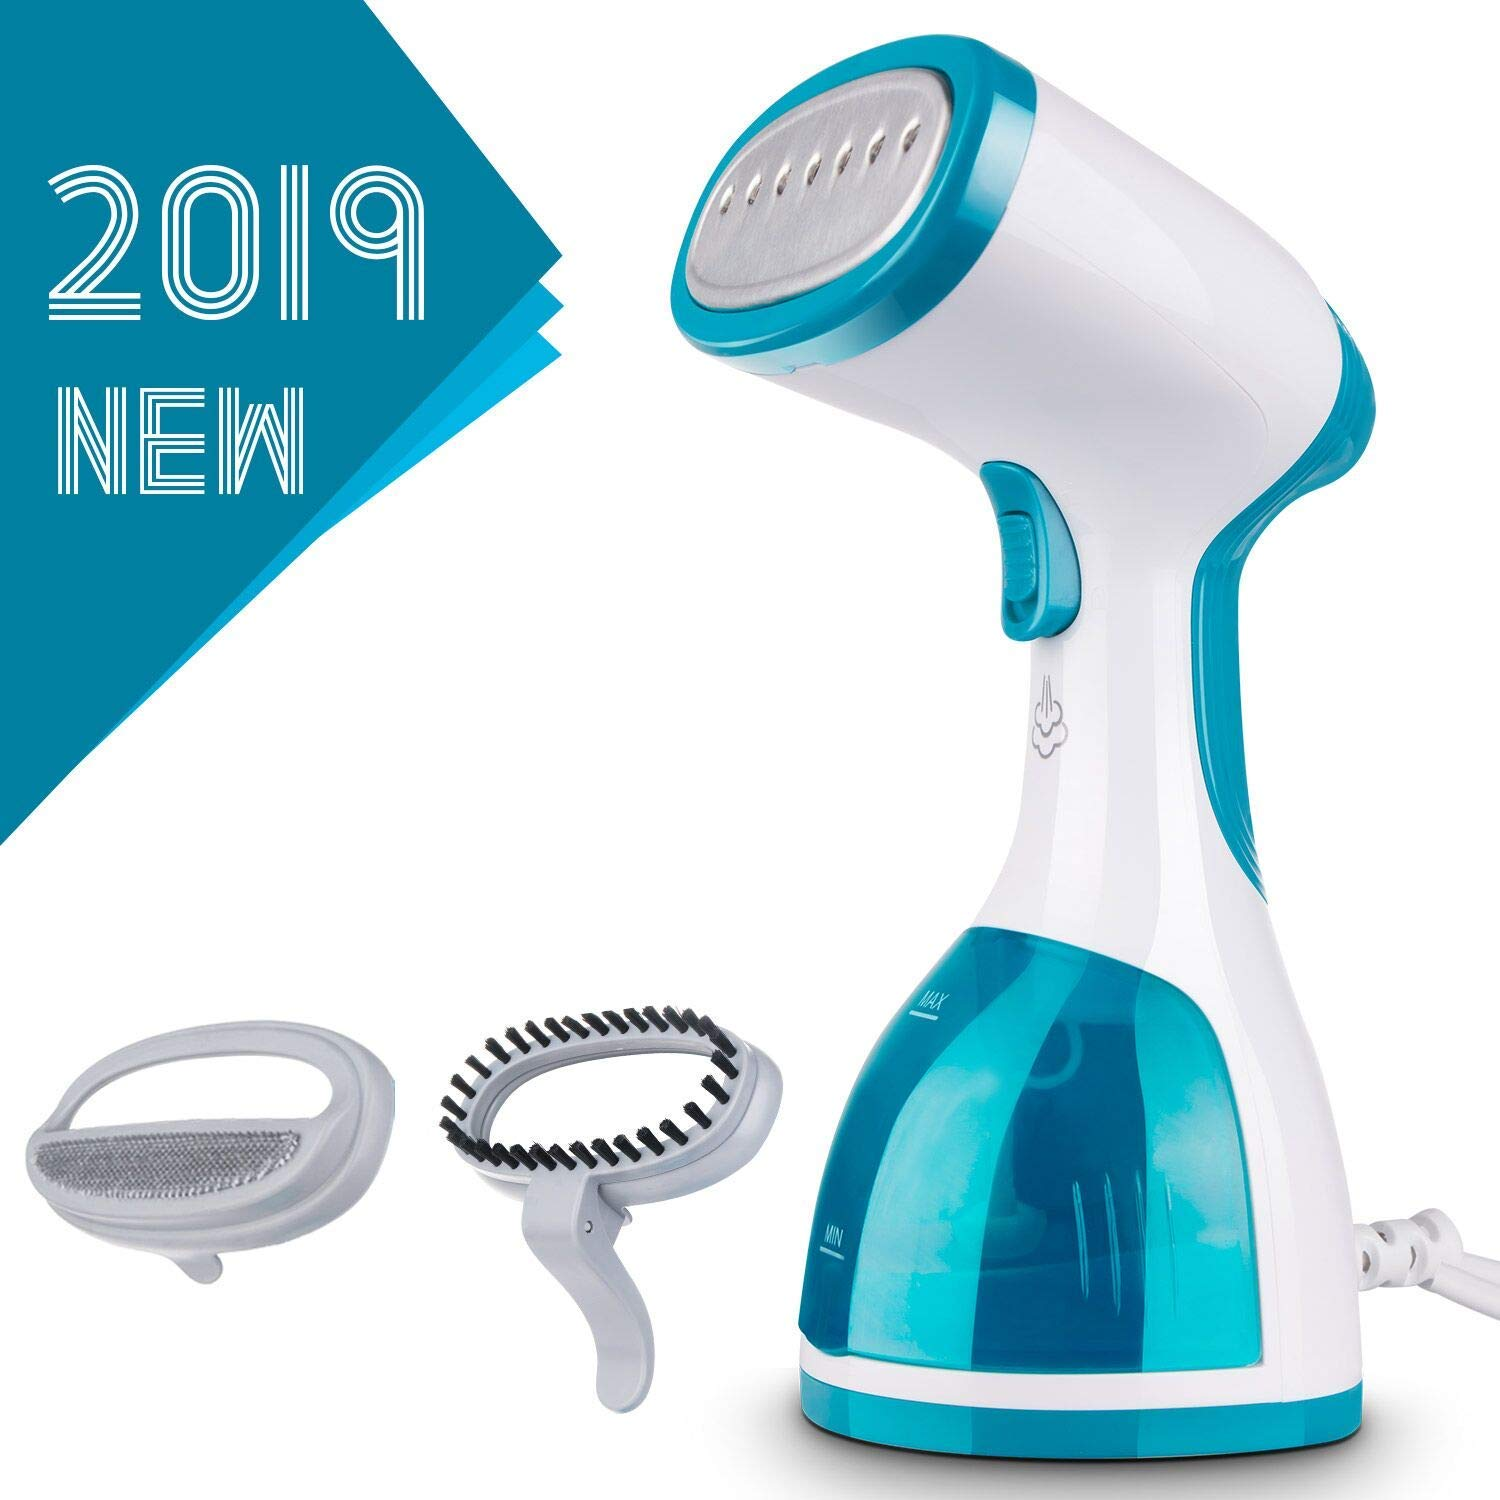 Steamer for Clothes-Upgraded Portable Clothes Steamer, 1000W Powerful Hand Held Garment Steamer with 8.79 oz. Large Detachable Water Tank for Clothes Wrinkle Remover, Soften, Clean and Sterilize, 40s